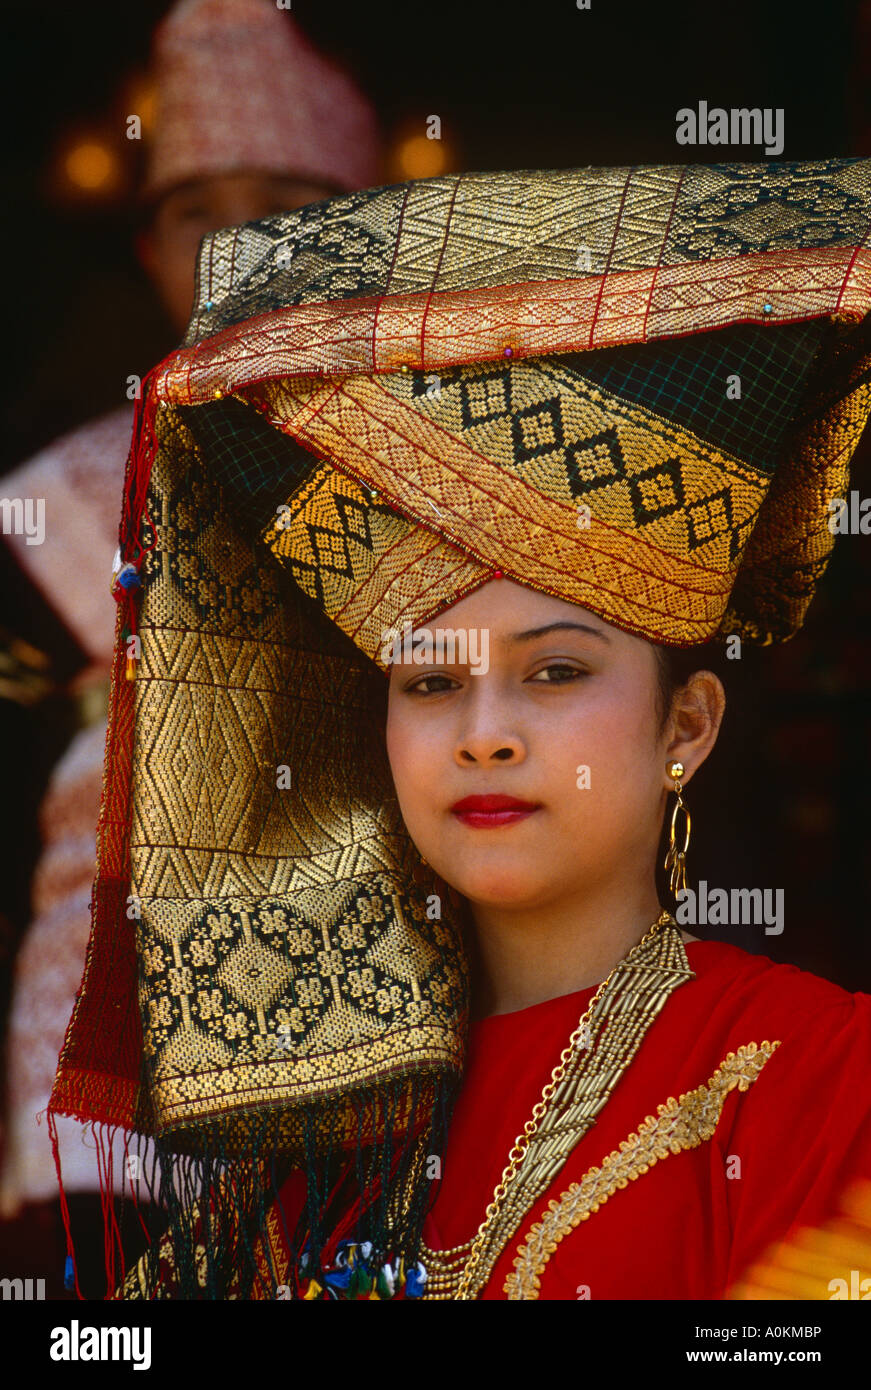 """java village single women Three were executed in java today  every day by the beautiful balinese women and girls  a single work """"dictated by god"""" in a single language from a single ."""